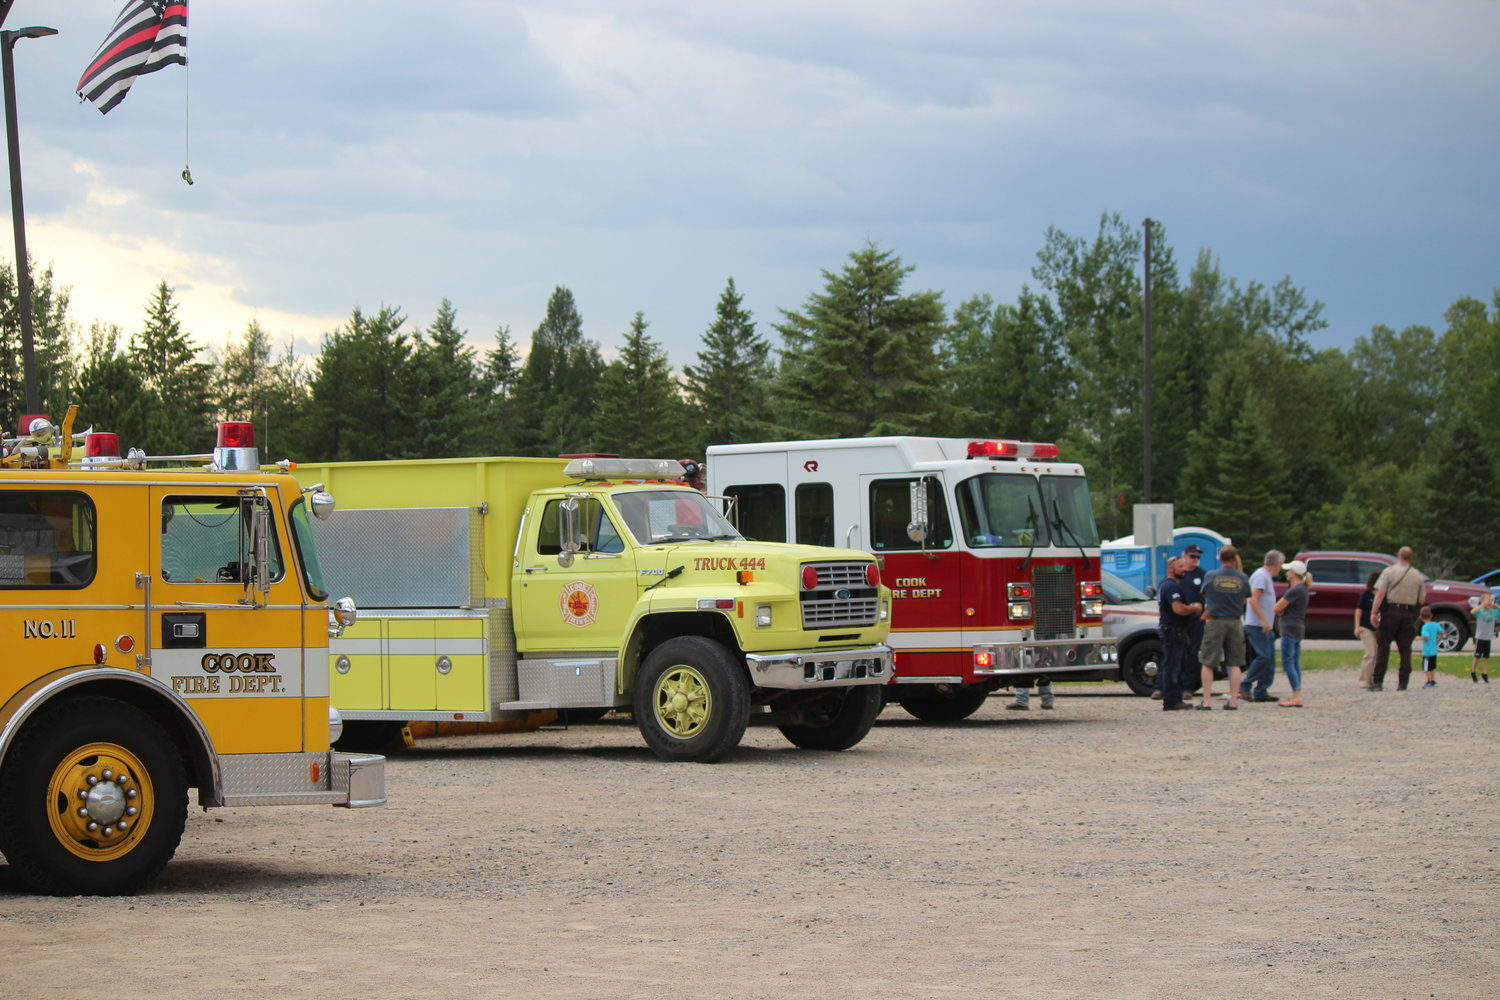 Visitors were given the opportunity to explore emergency vehicles in the Cook Community Center parking lot.